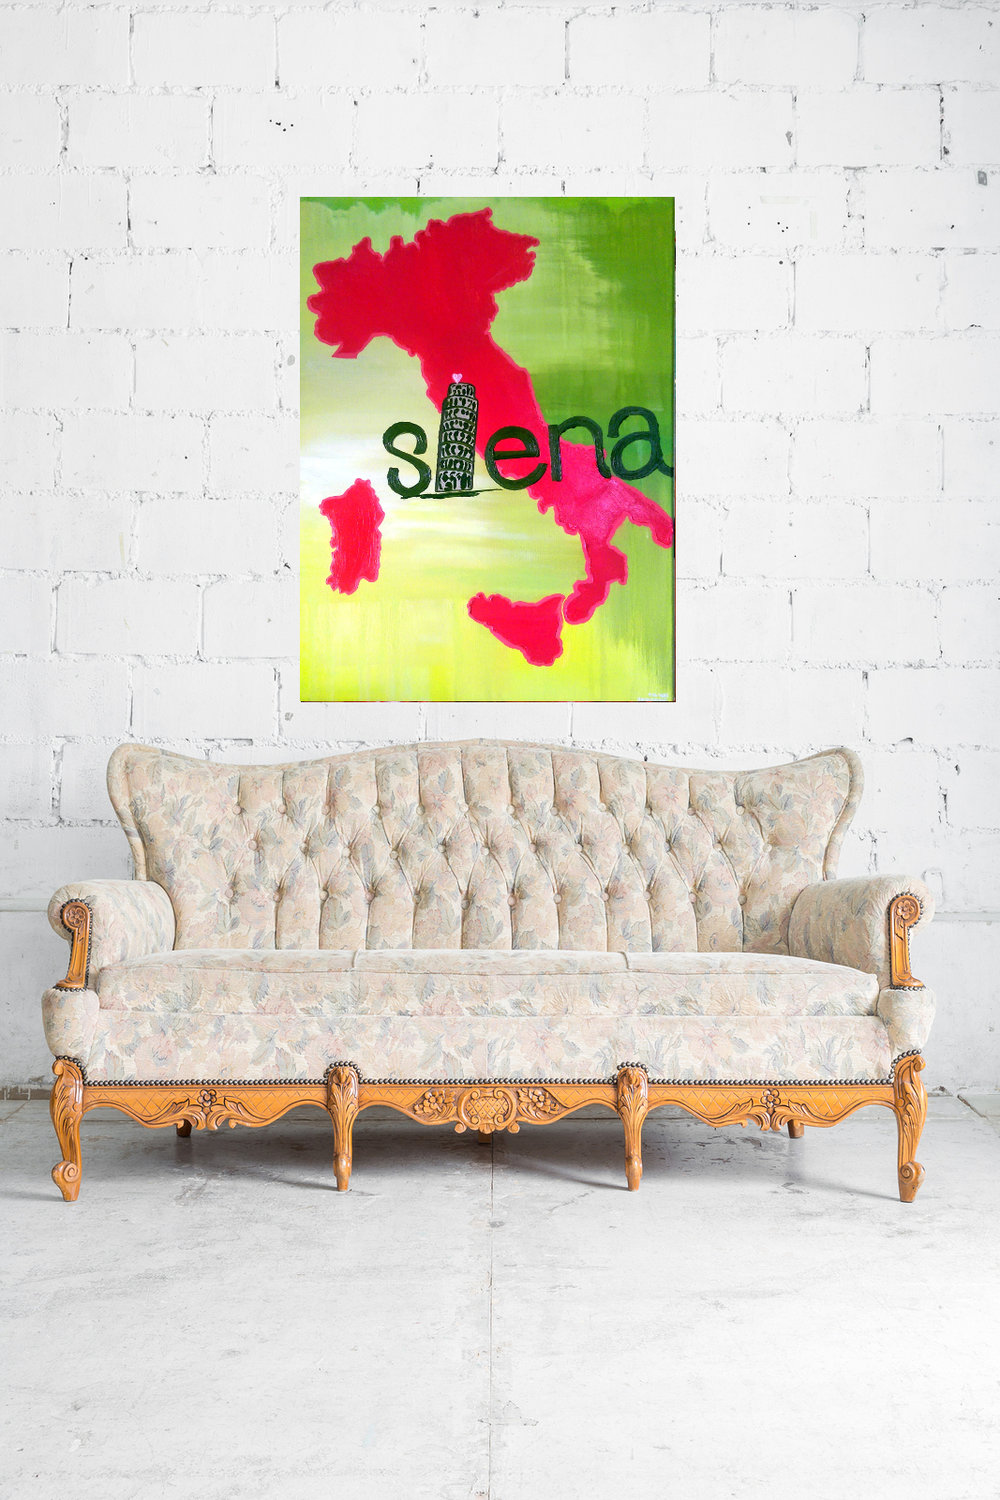 italian beaut vintage sofa white brick wall.jpg